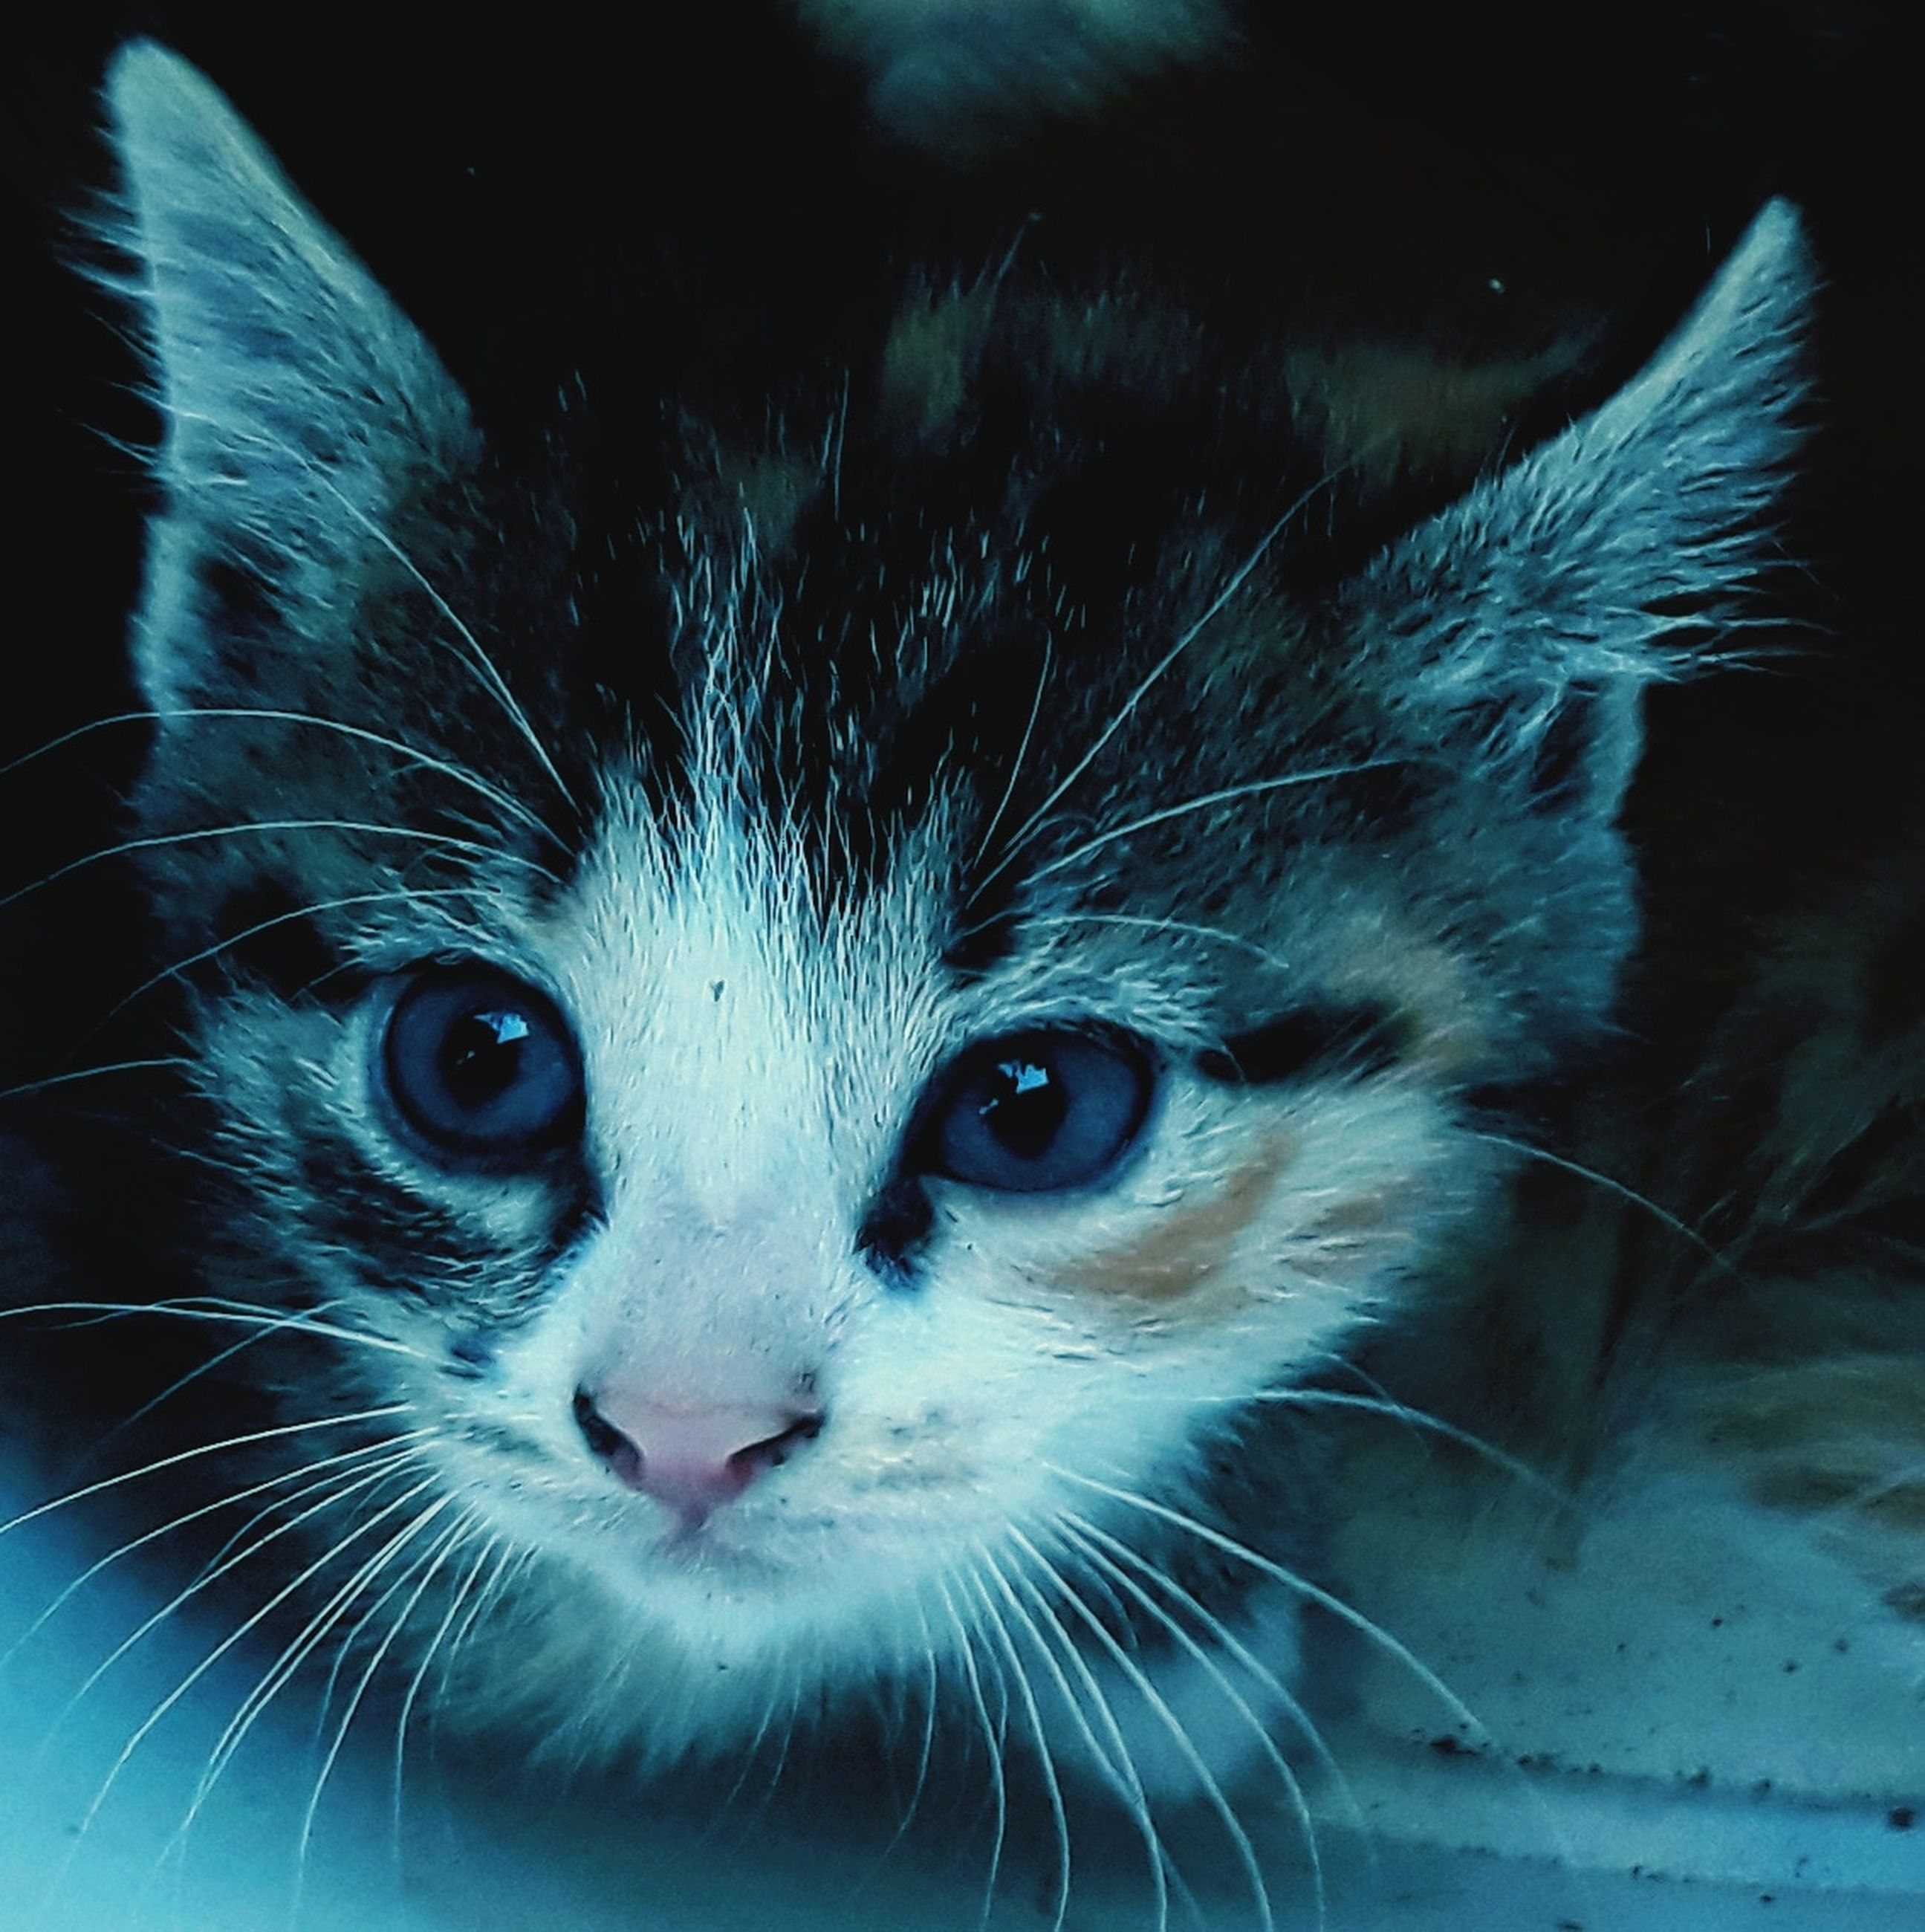 mammal, cat, domestic cat, one animal, animal, domestic, whisker, feline, pets, animal themes, domestic animals, portrait, looking at camera, close-up, animal body part, animal head, no people, vertebrate, focus on foreground, indoors, animal eye